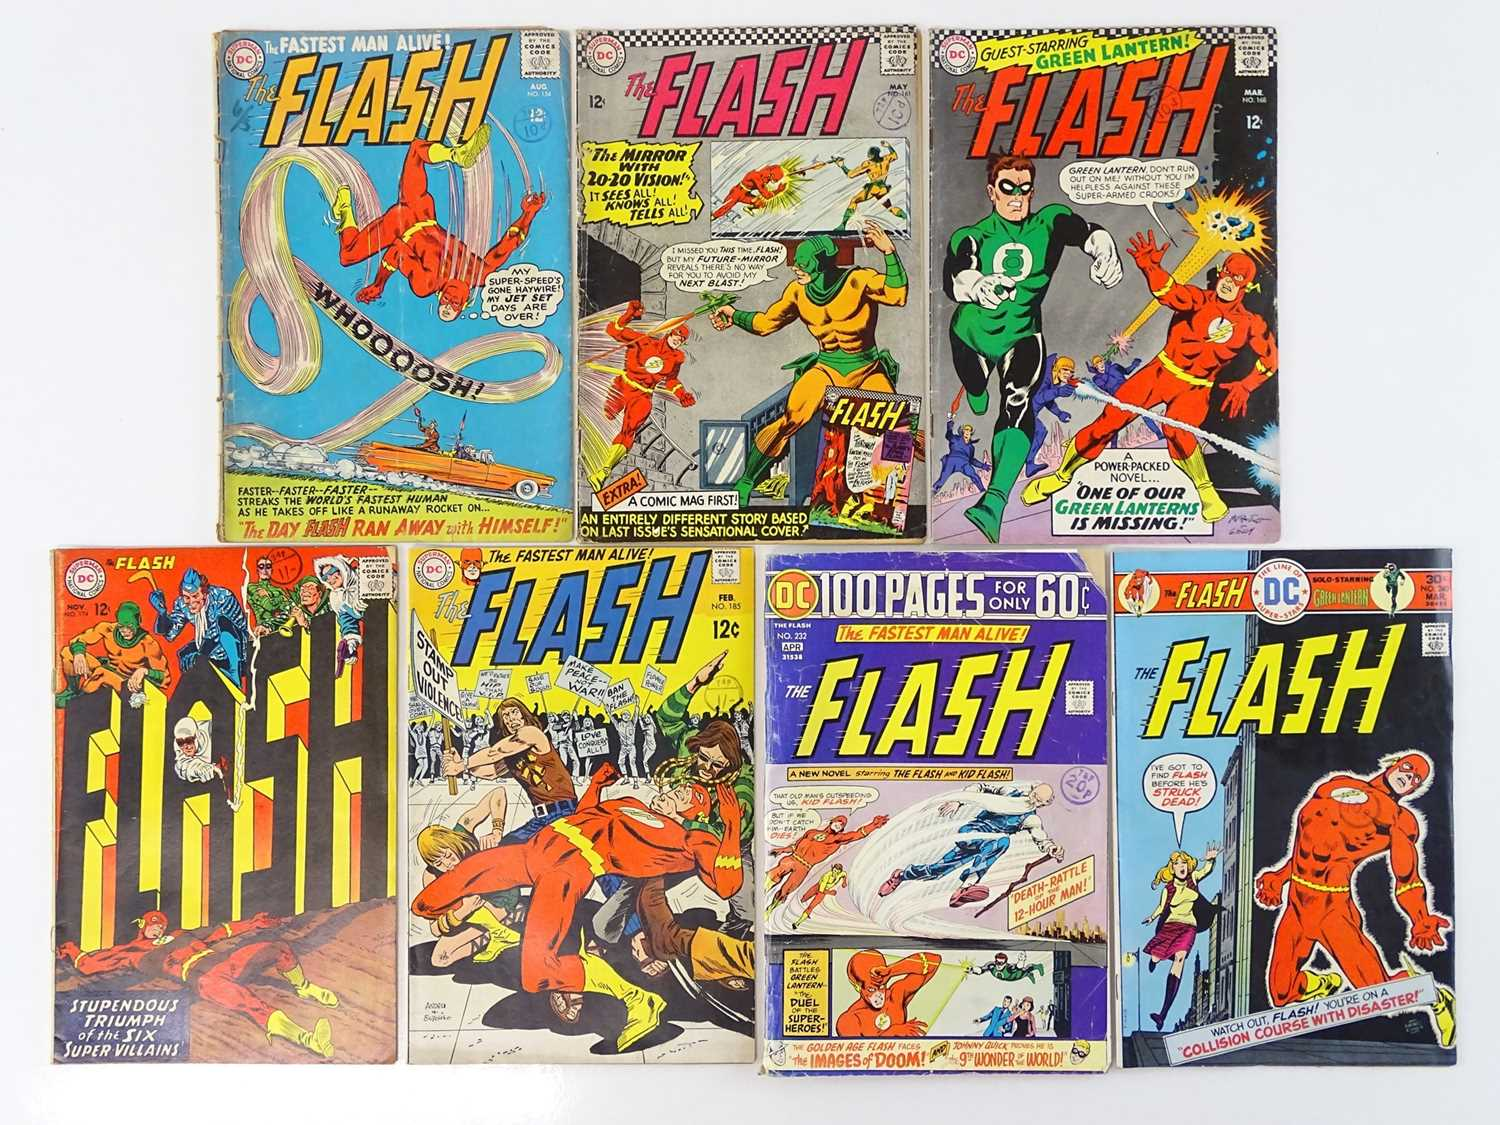 FLASH #154, 161, 168, 174, 185, 232, 240 - (7 in Lot) - (1965/76 - DC - UK Cover Price) - Includes